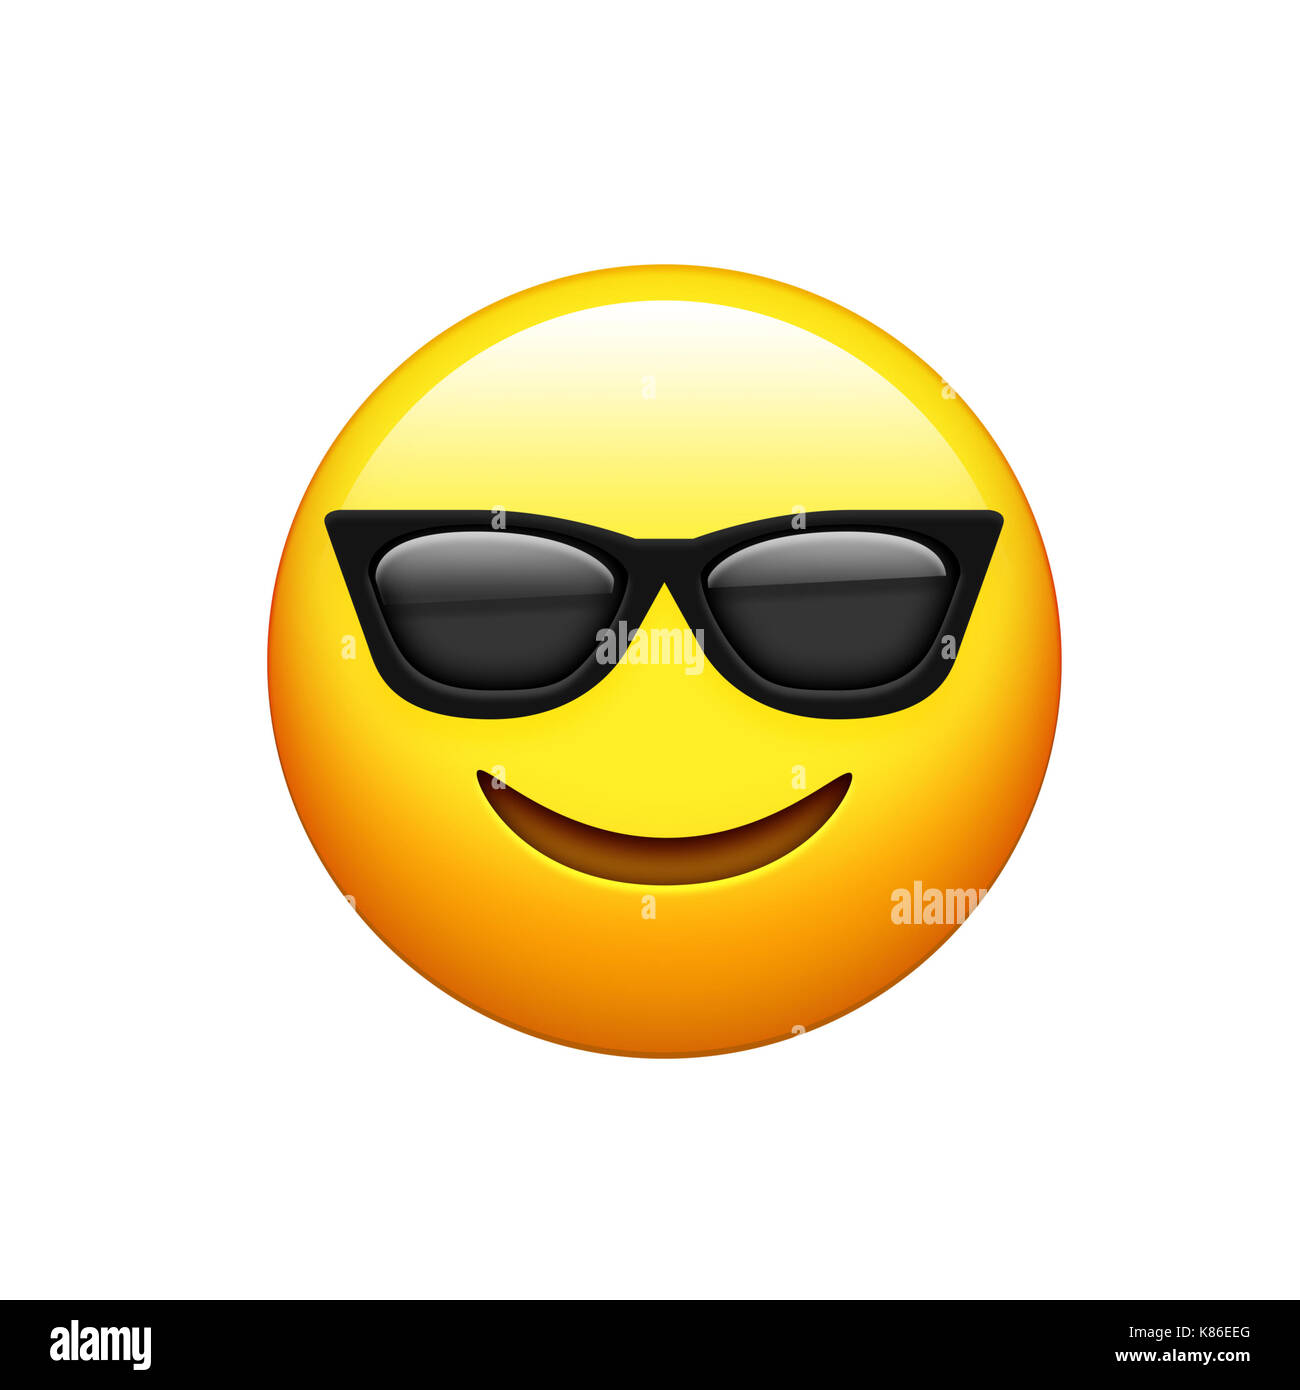 The yellow face with black sunglass and smile icon - Stock Image